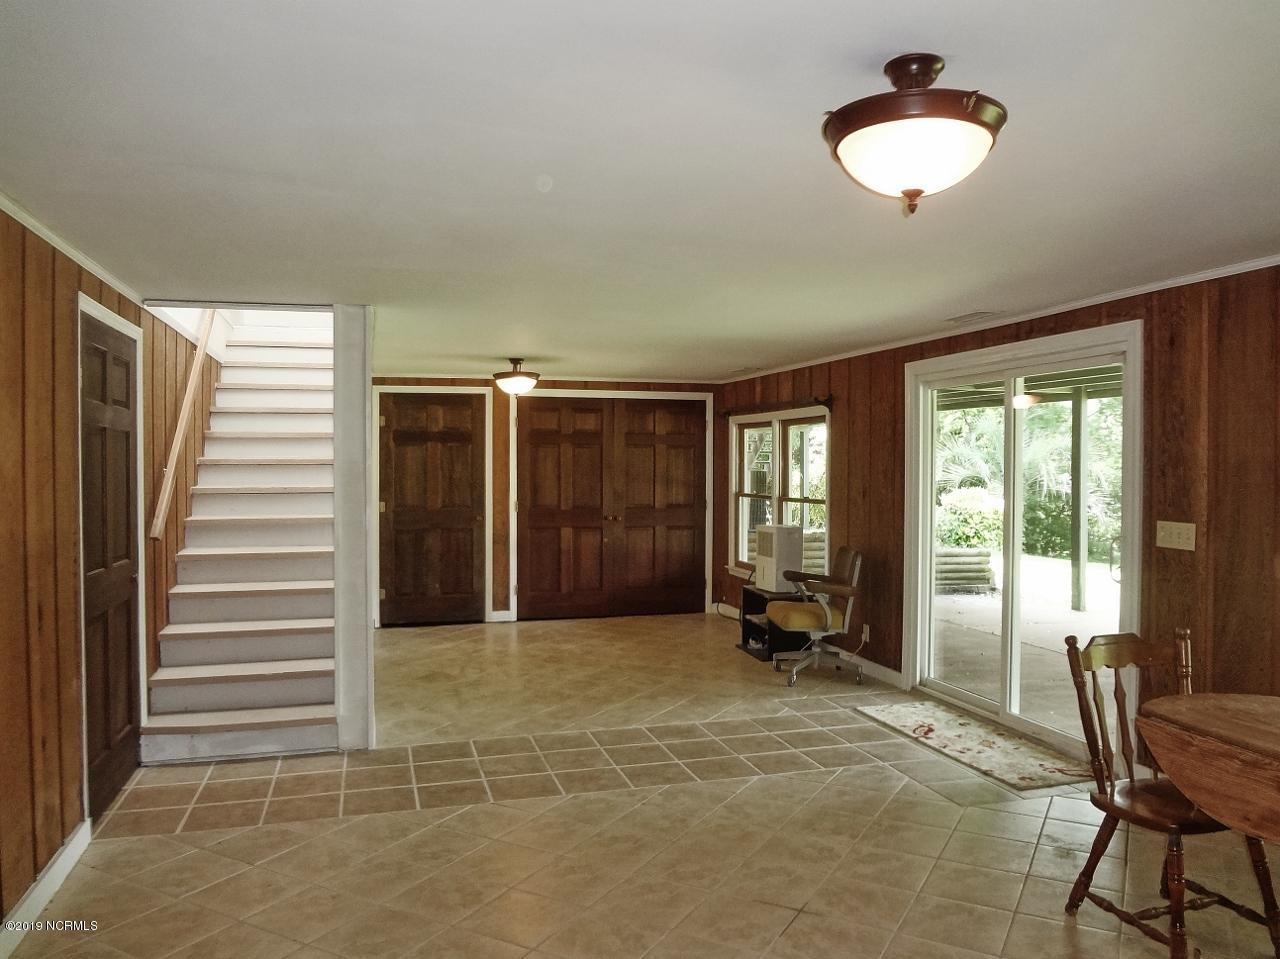 532 Medcalf Drive Sunset Beach, NC 28468